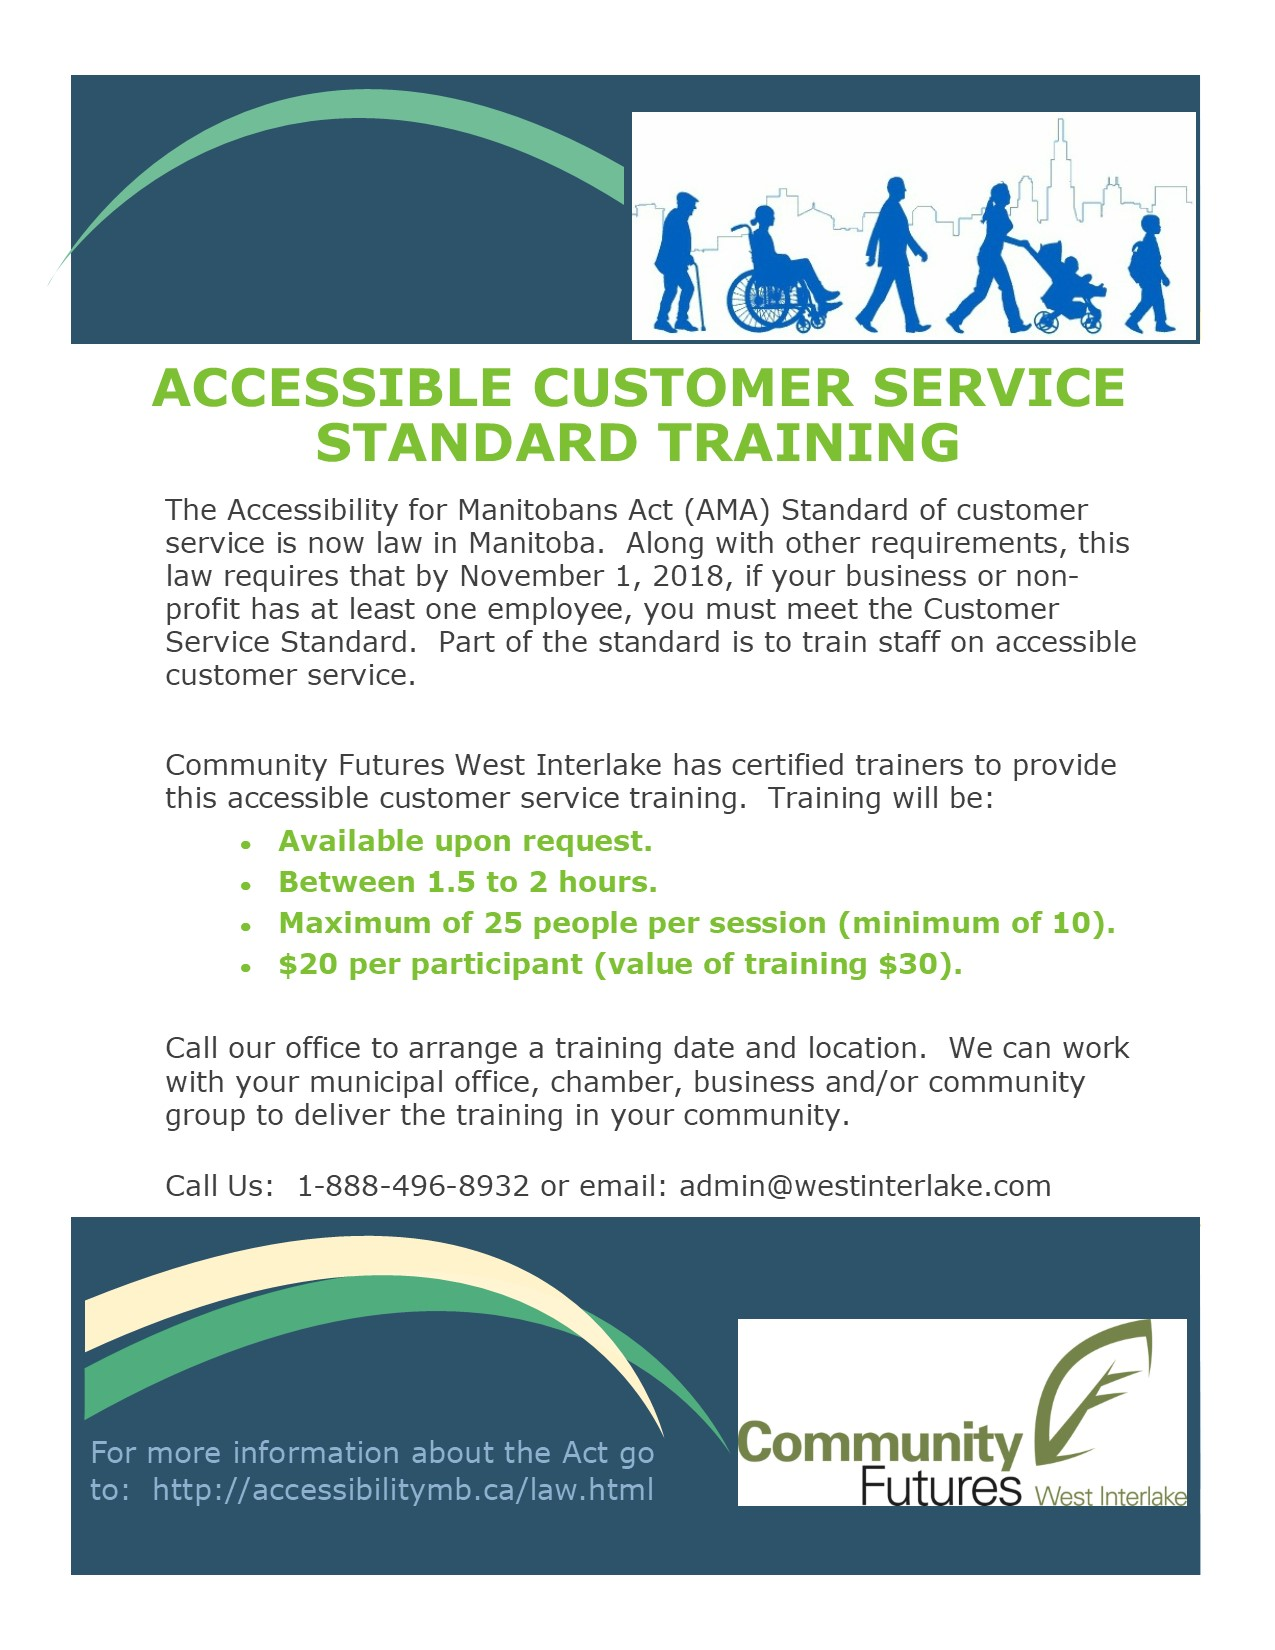 accessiblity training poster